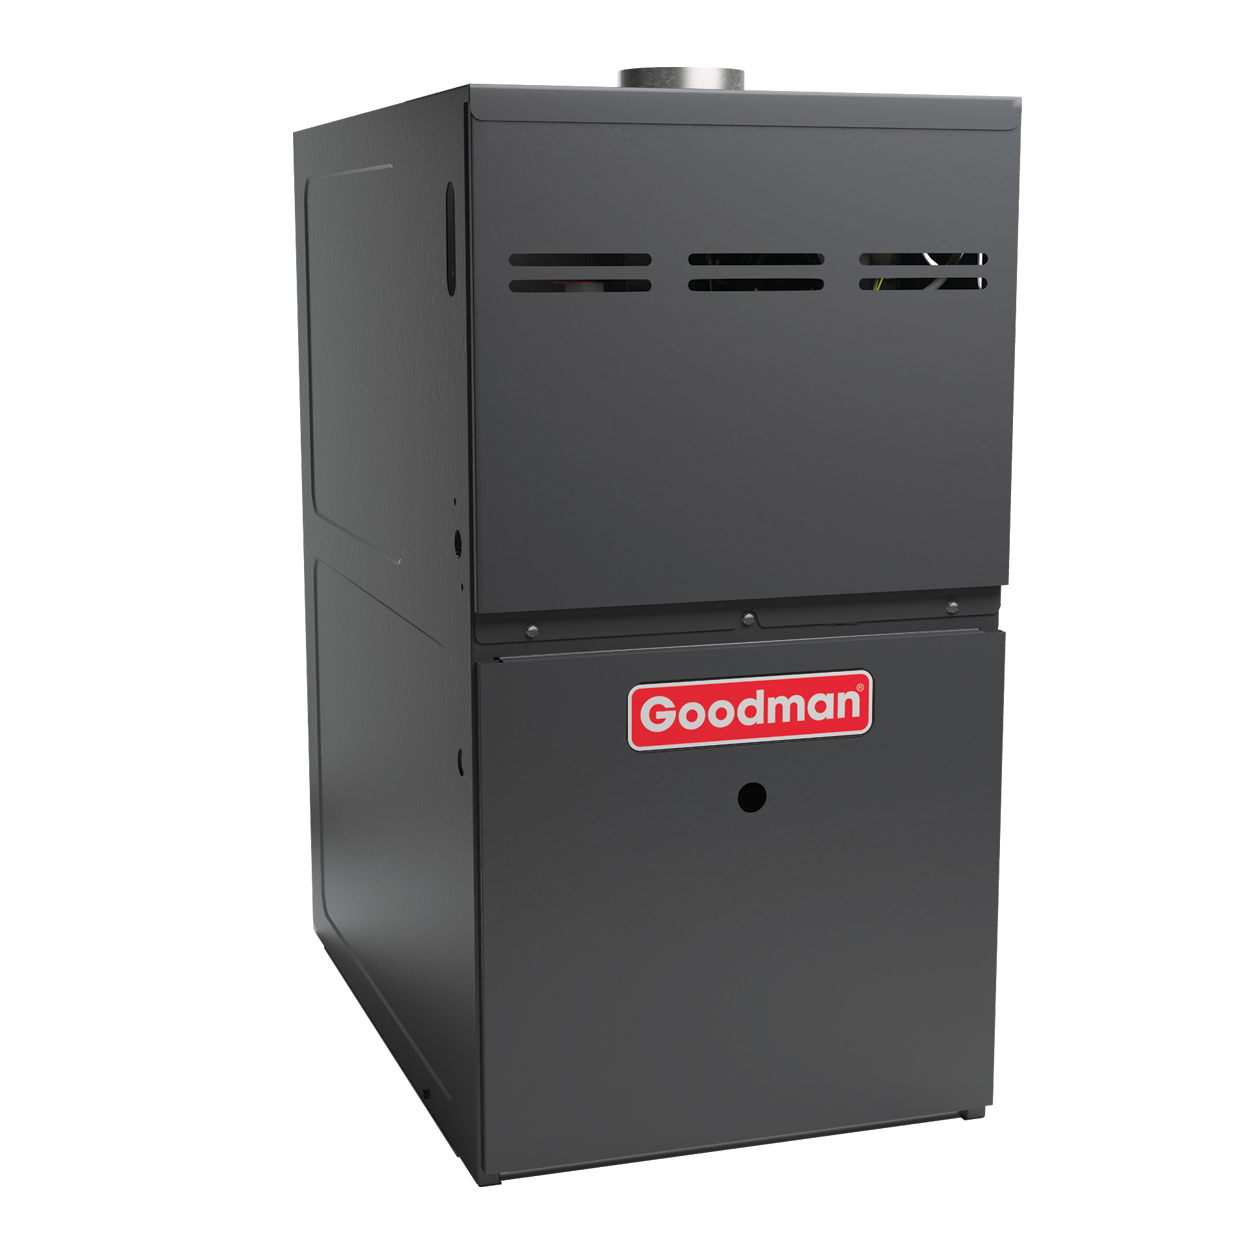 gas furnaces by goodman air conditioning heating the 80% afue rating on this gas furnace means that 80 cents of every energy dollar warms your home